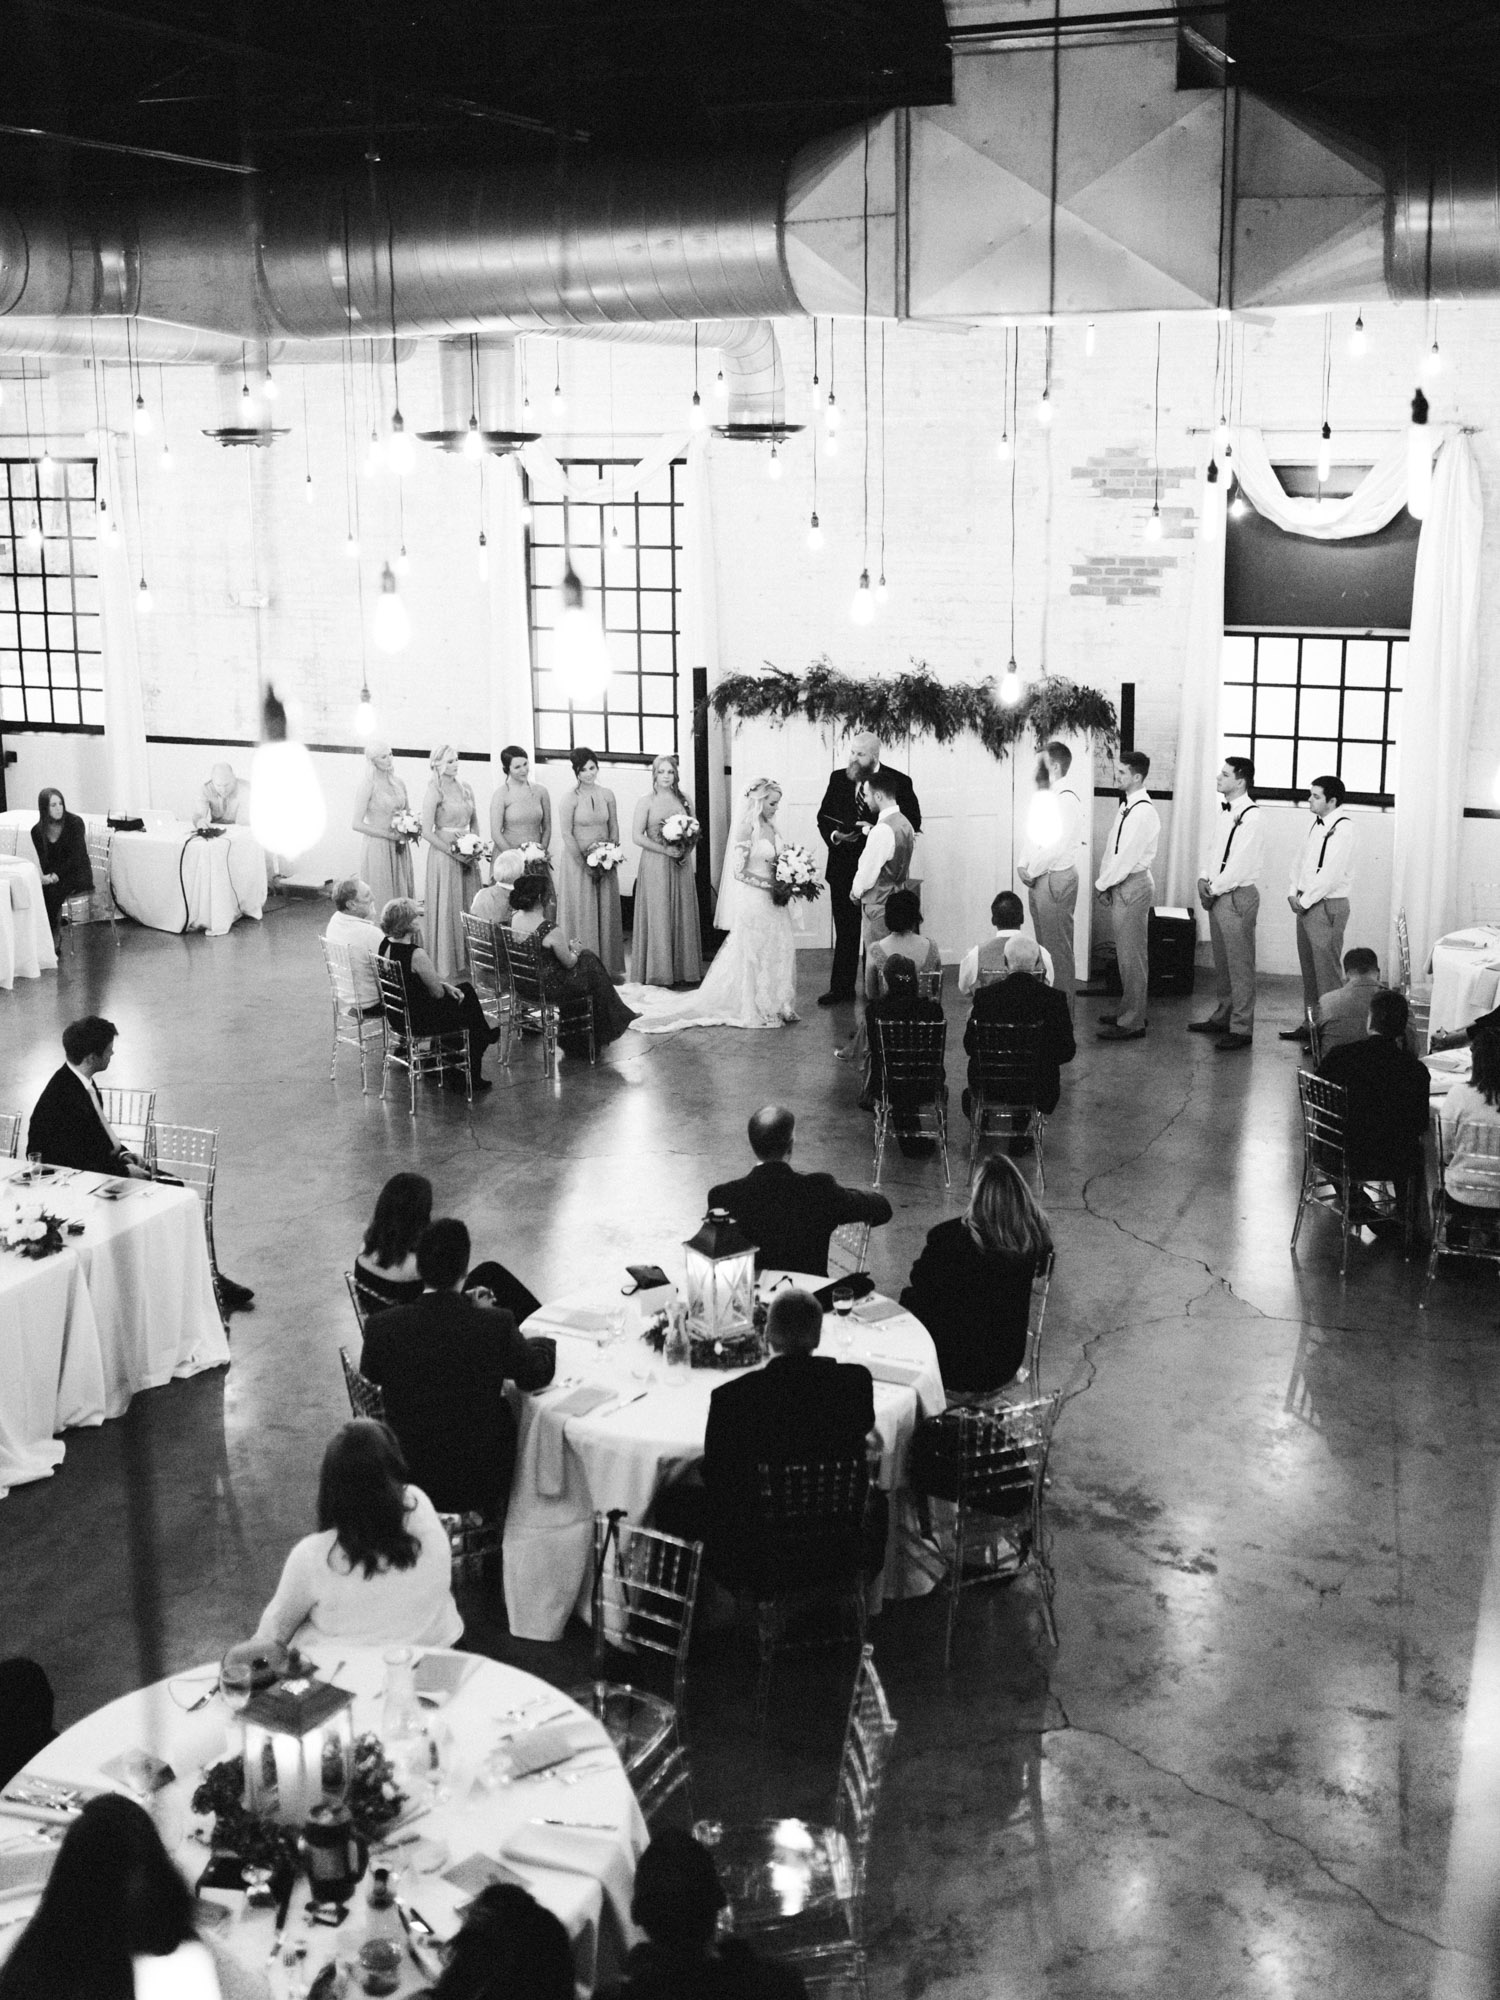 An intimate wedding ceremony in an industrial wedding venue with hanging Edison bulbs, The Brick in South Bend, Indiana